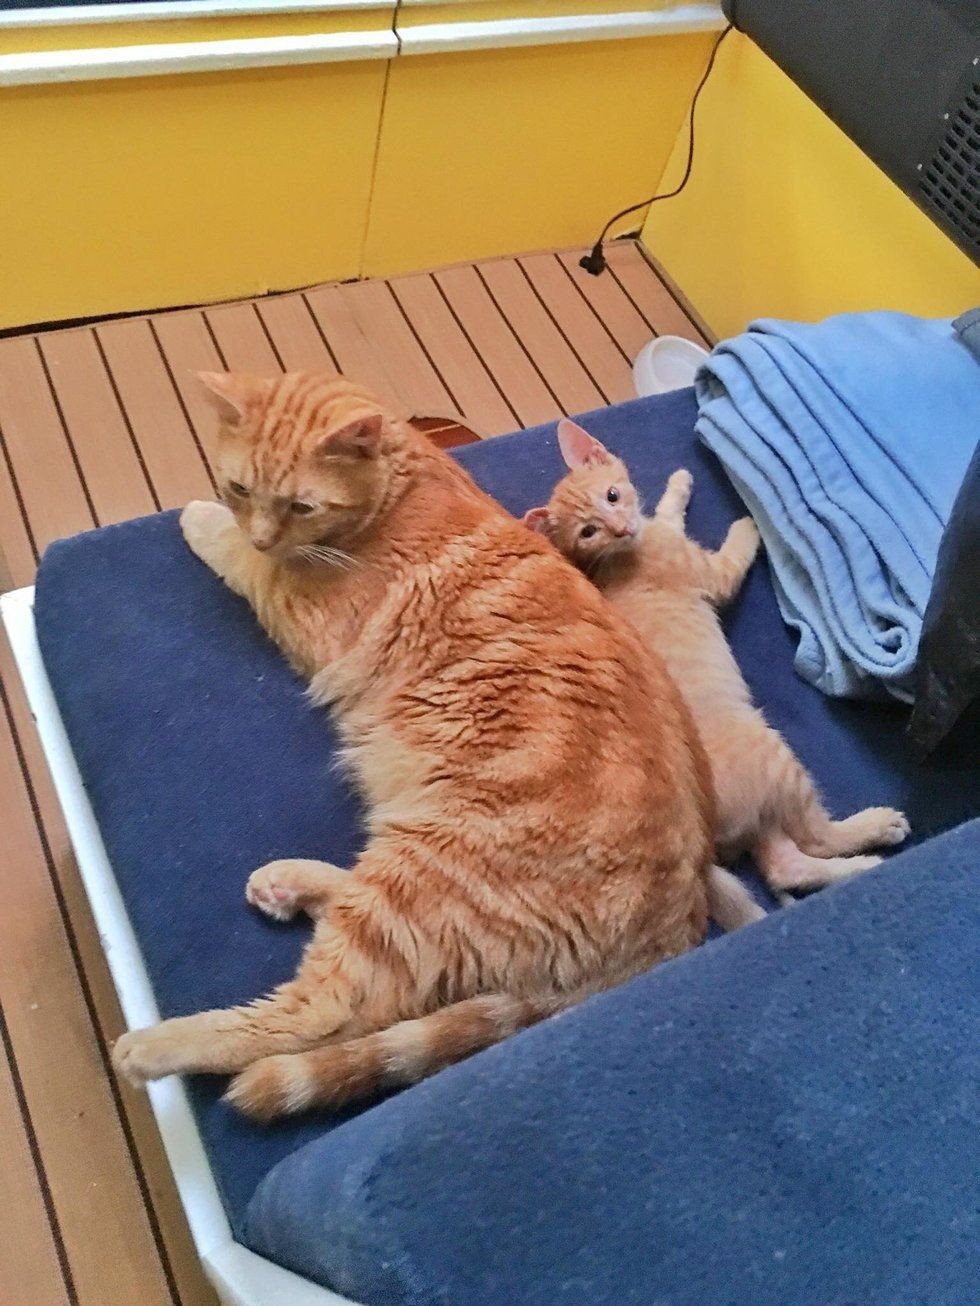 Rescued Kitten Who Needed a Home, Finds Sailor Cat Who